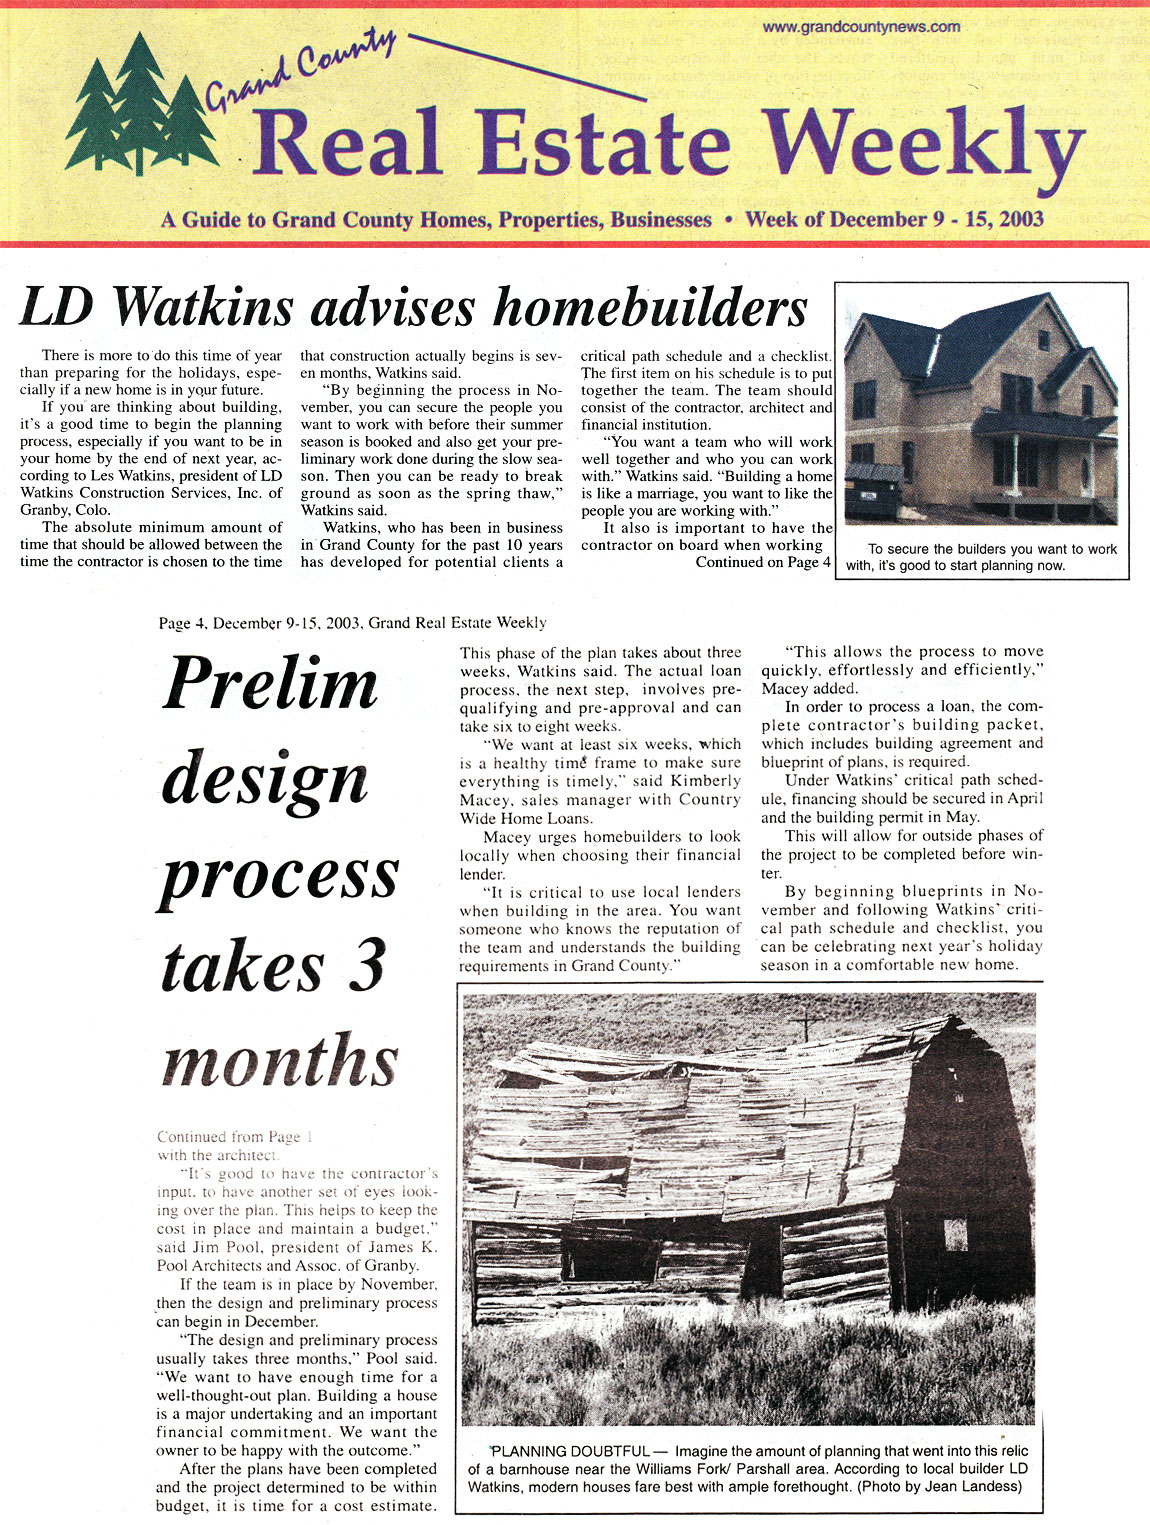 Homebuilder Advise from LD Watkins, as published in December 2003